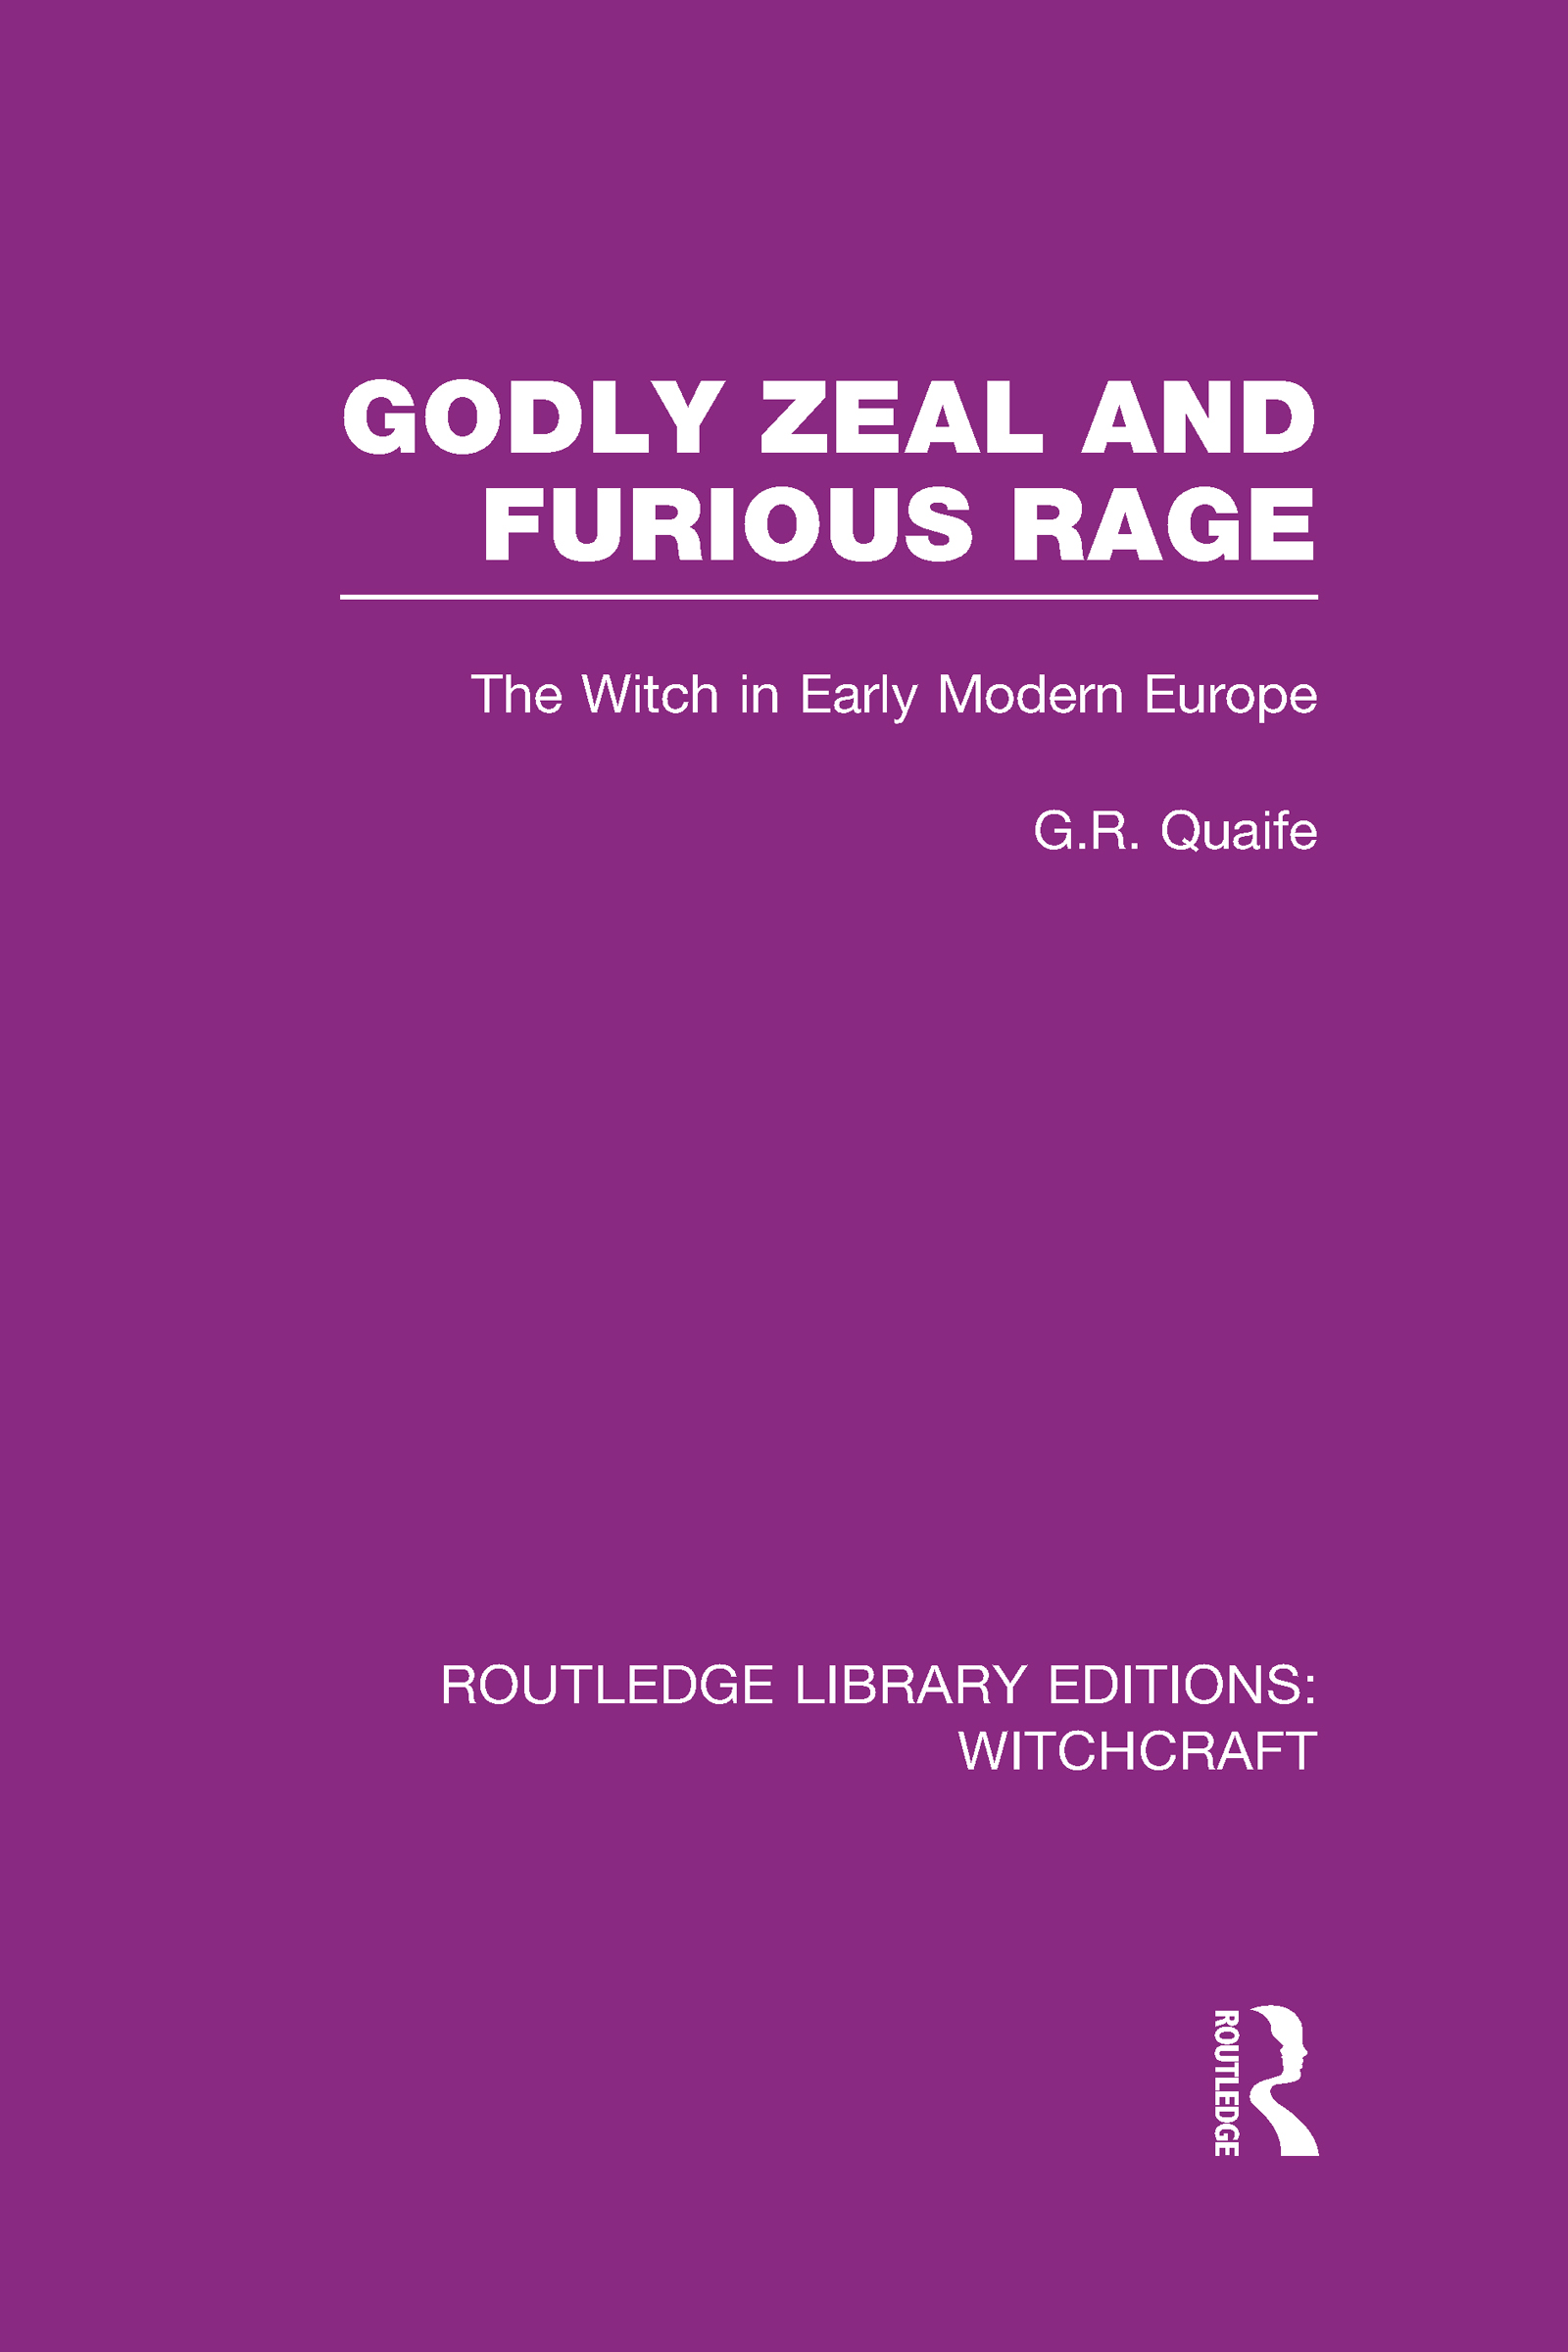 Godly Zeal and Furious Rage (RLE Witchcraft): The Witch in Early Modern Europe (Hardback) book cover